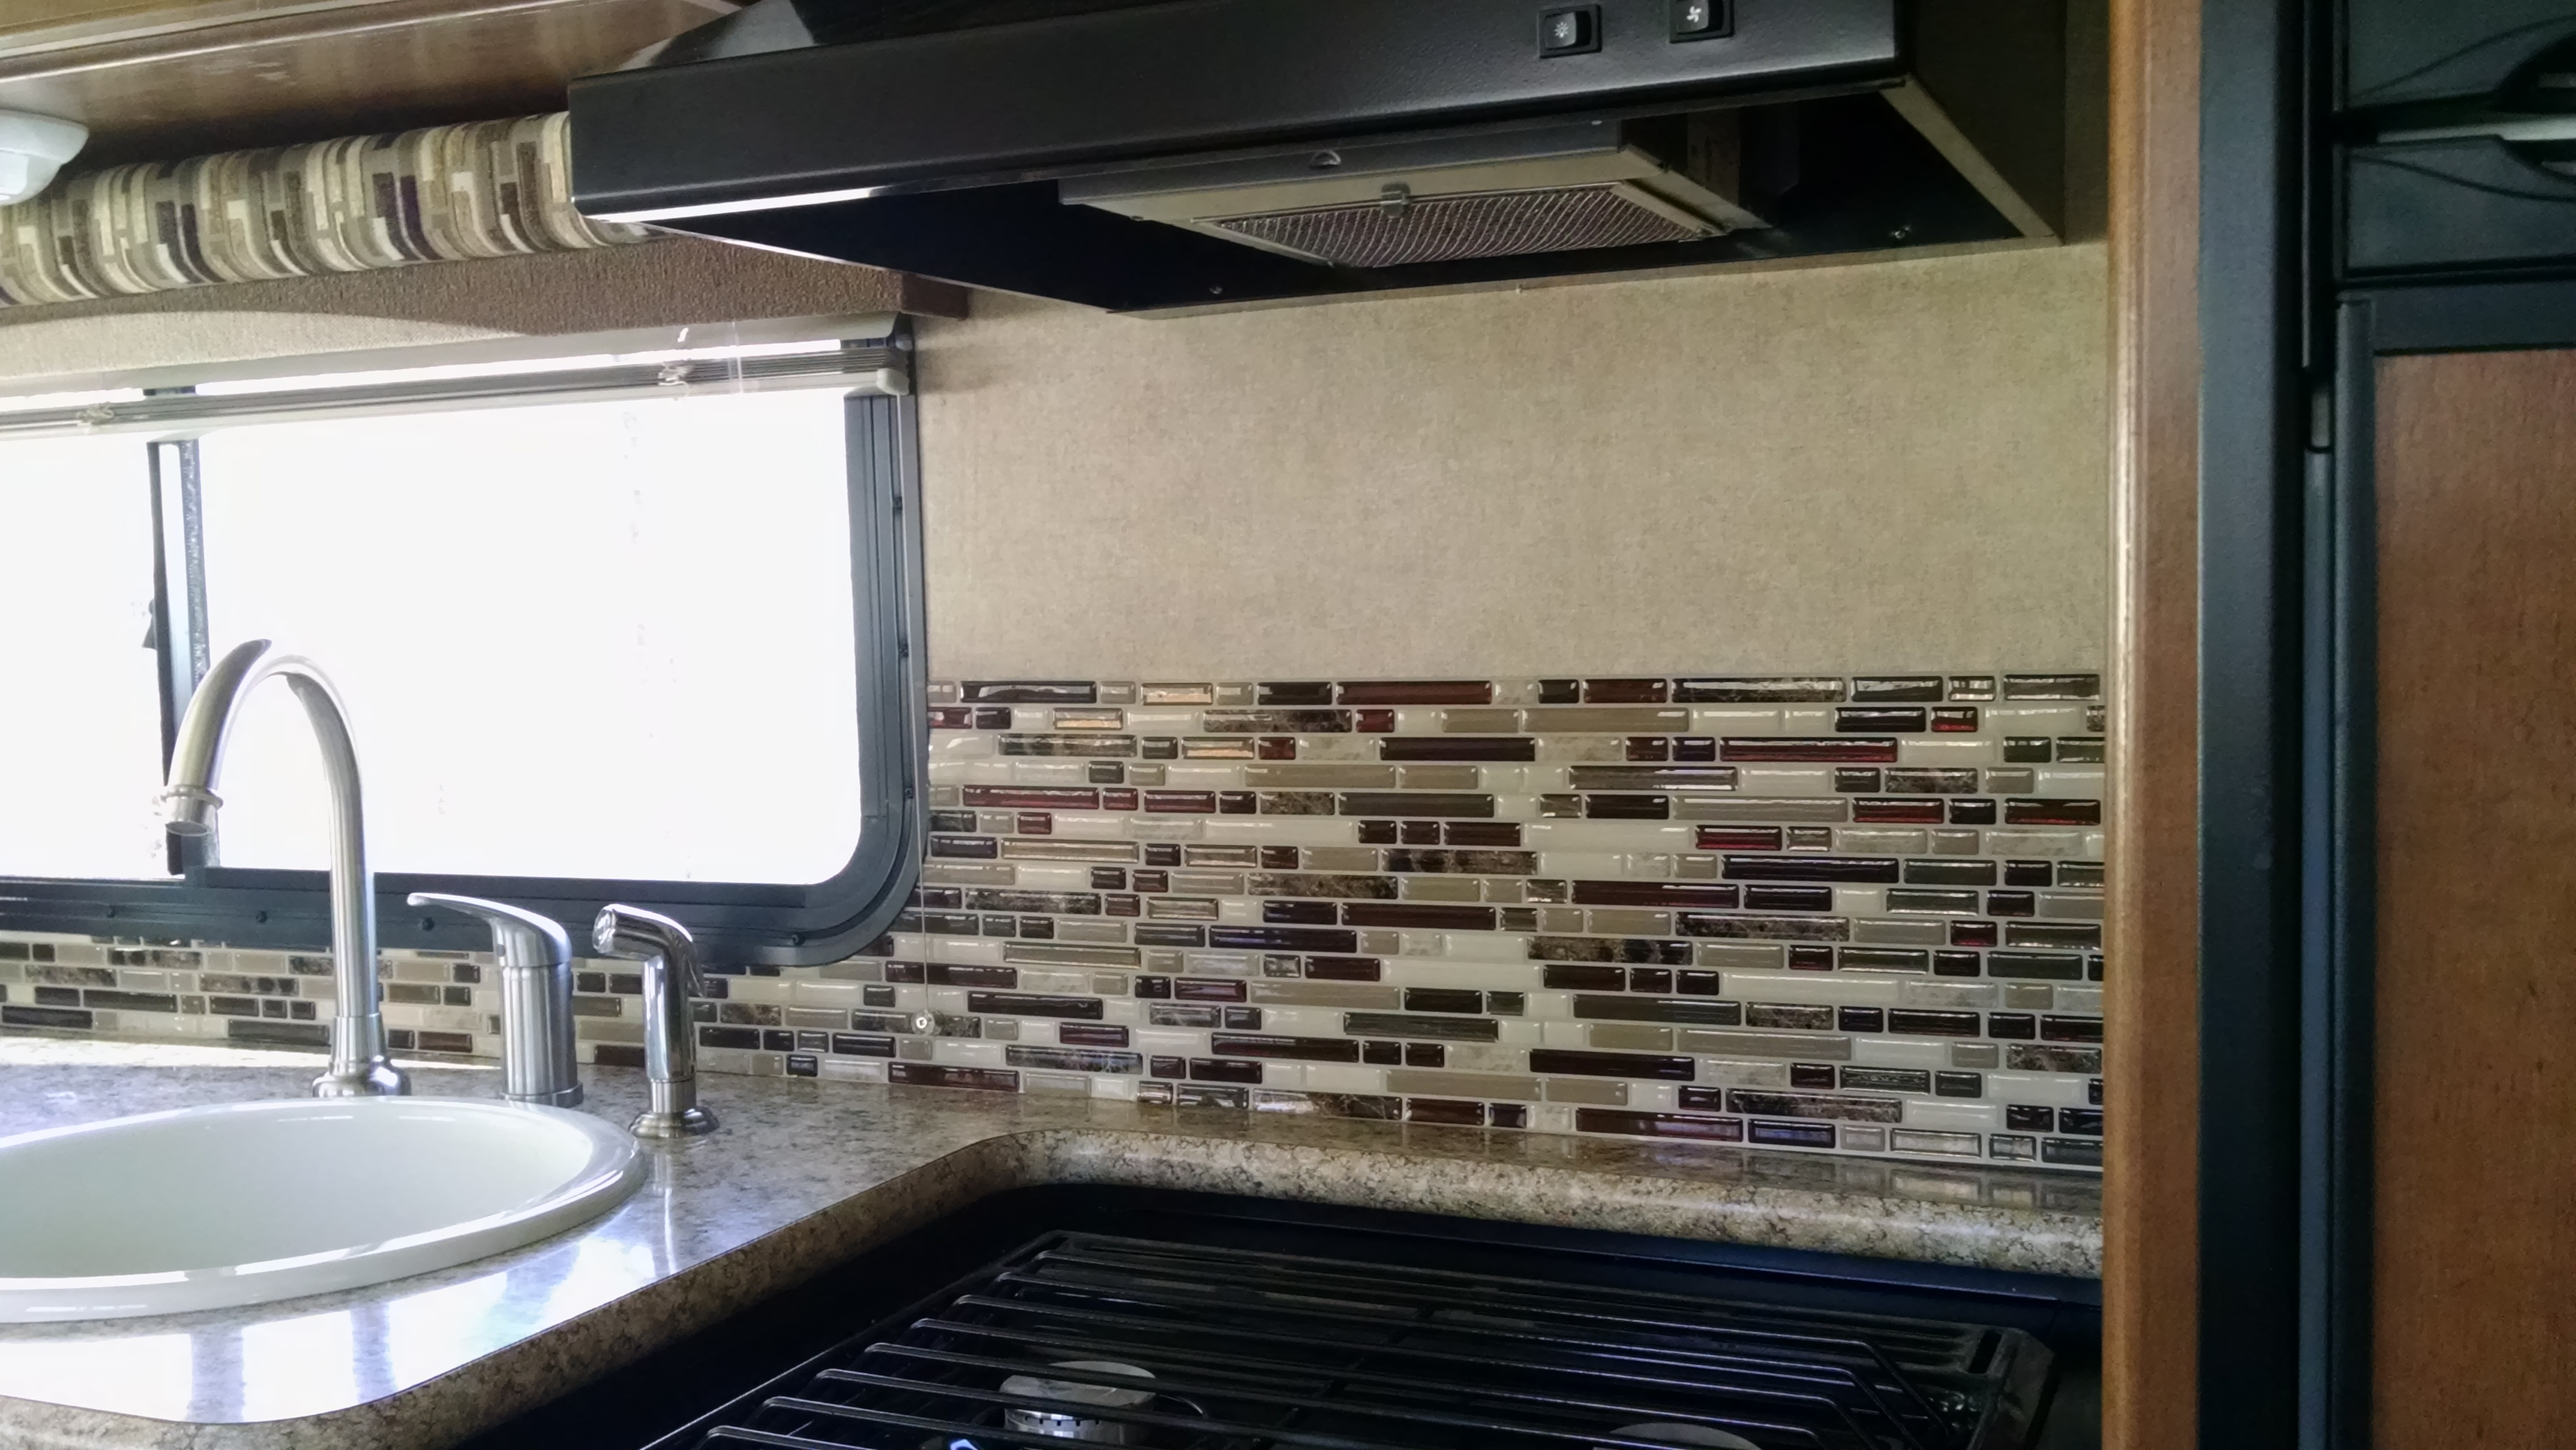 - 6 Crazy-Easy, Affordable Kitchen Upgrades To Revamp Your Space